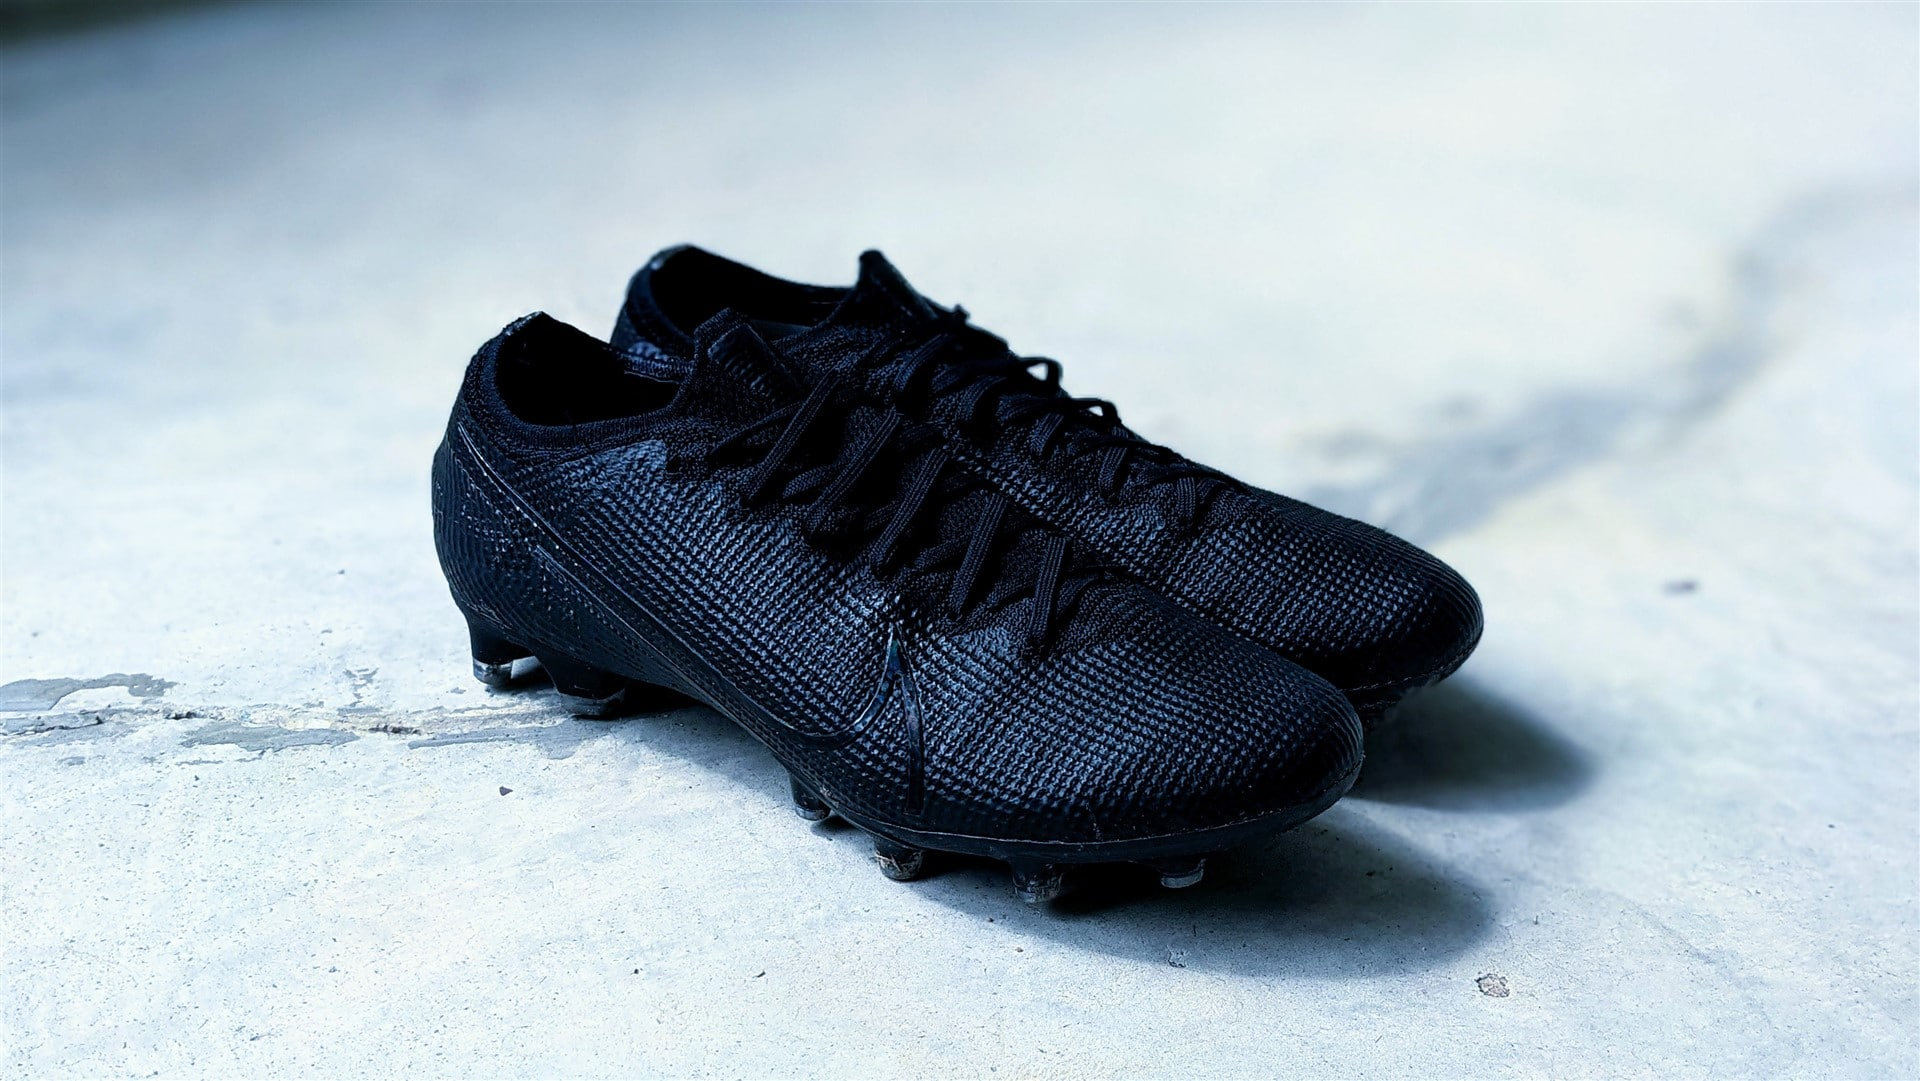 Nike Mercurial Vapor 13 review soccer cleats football boots